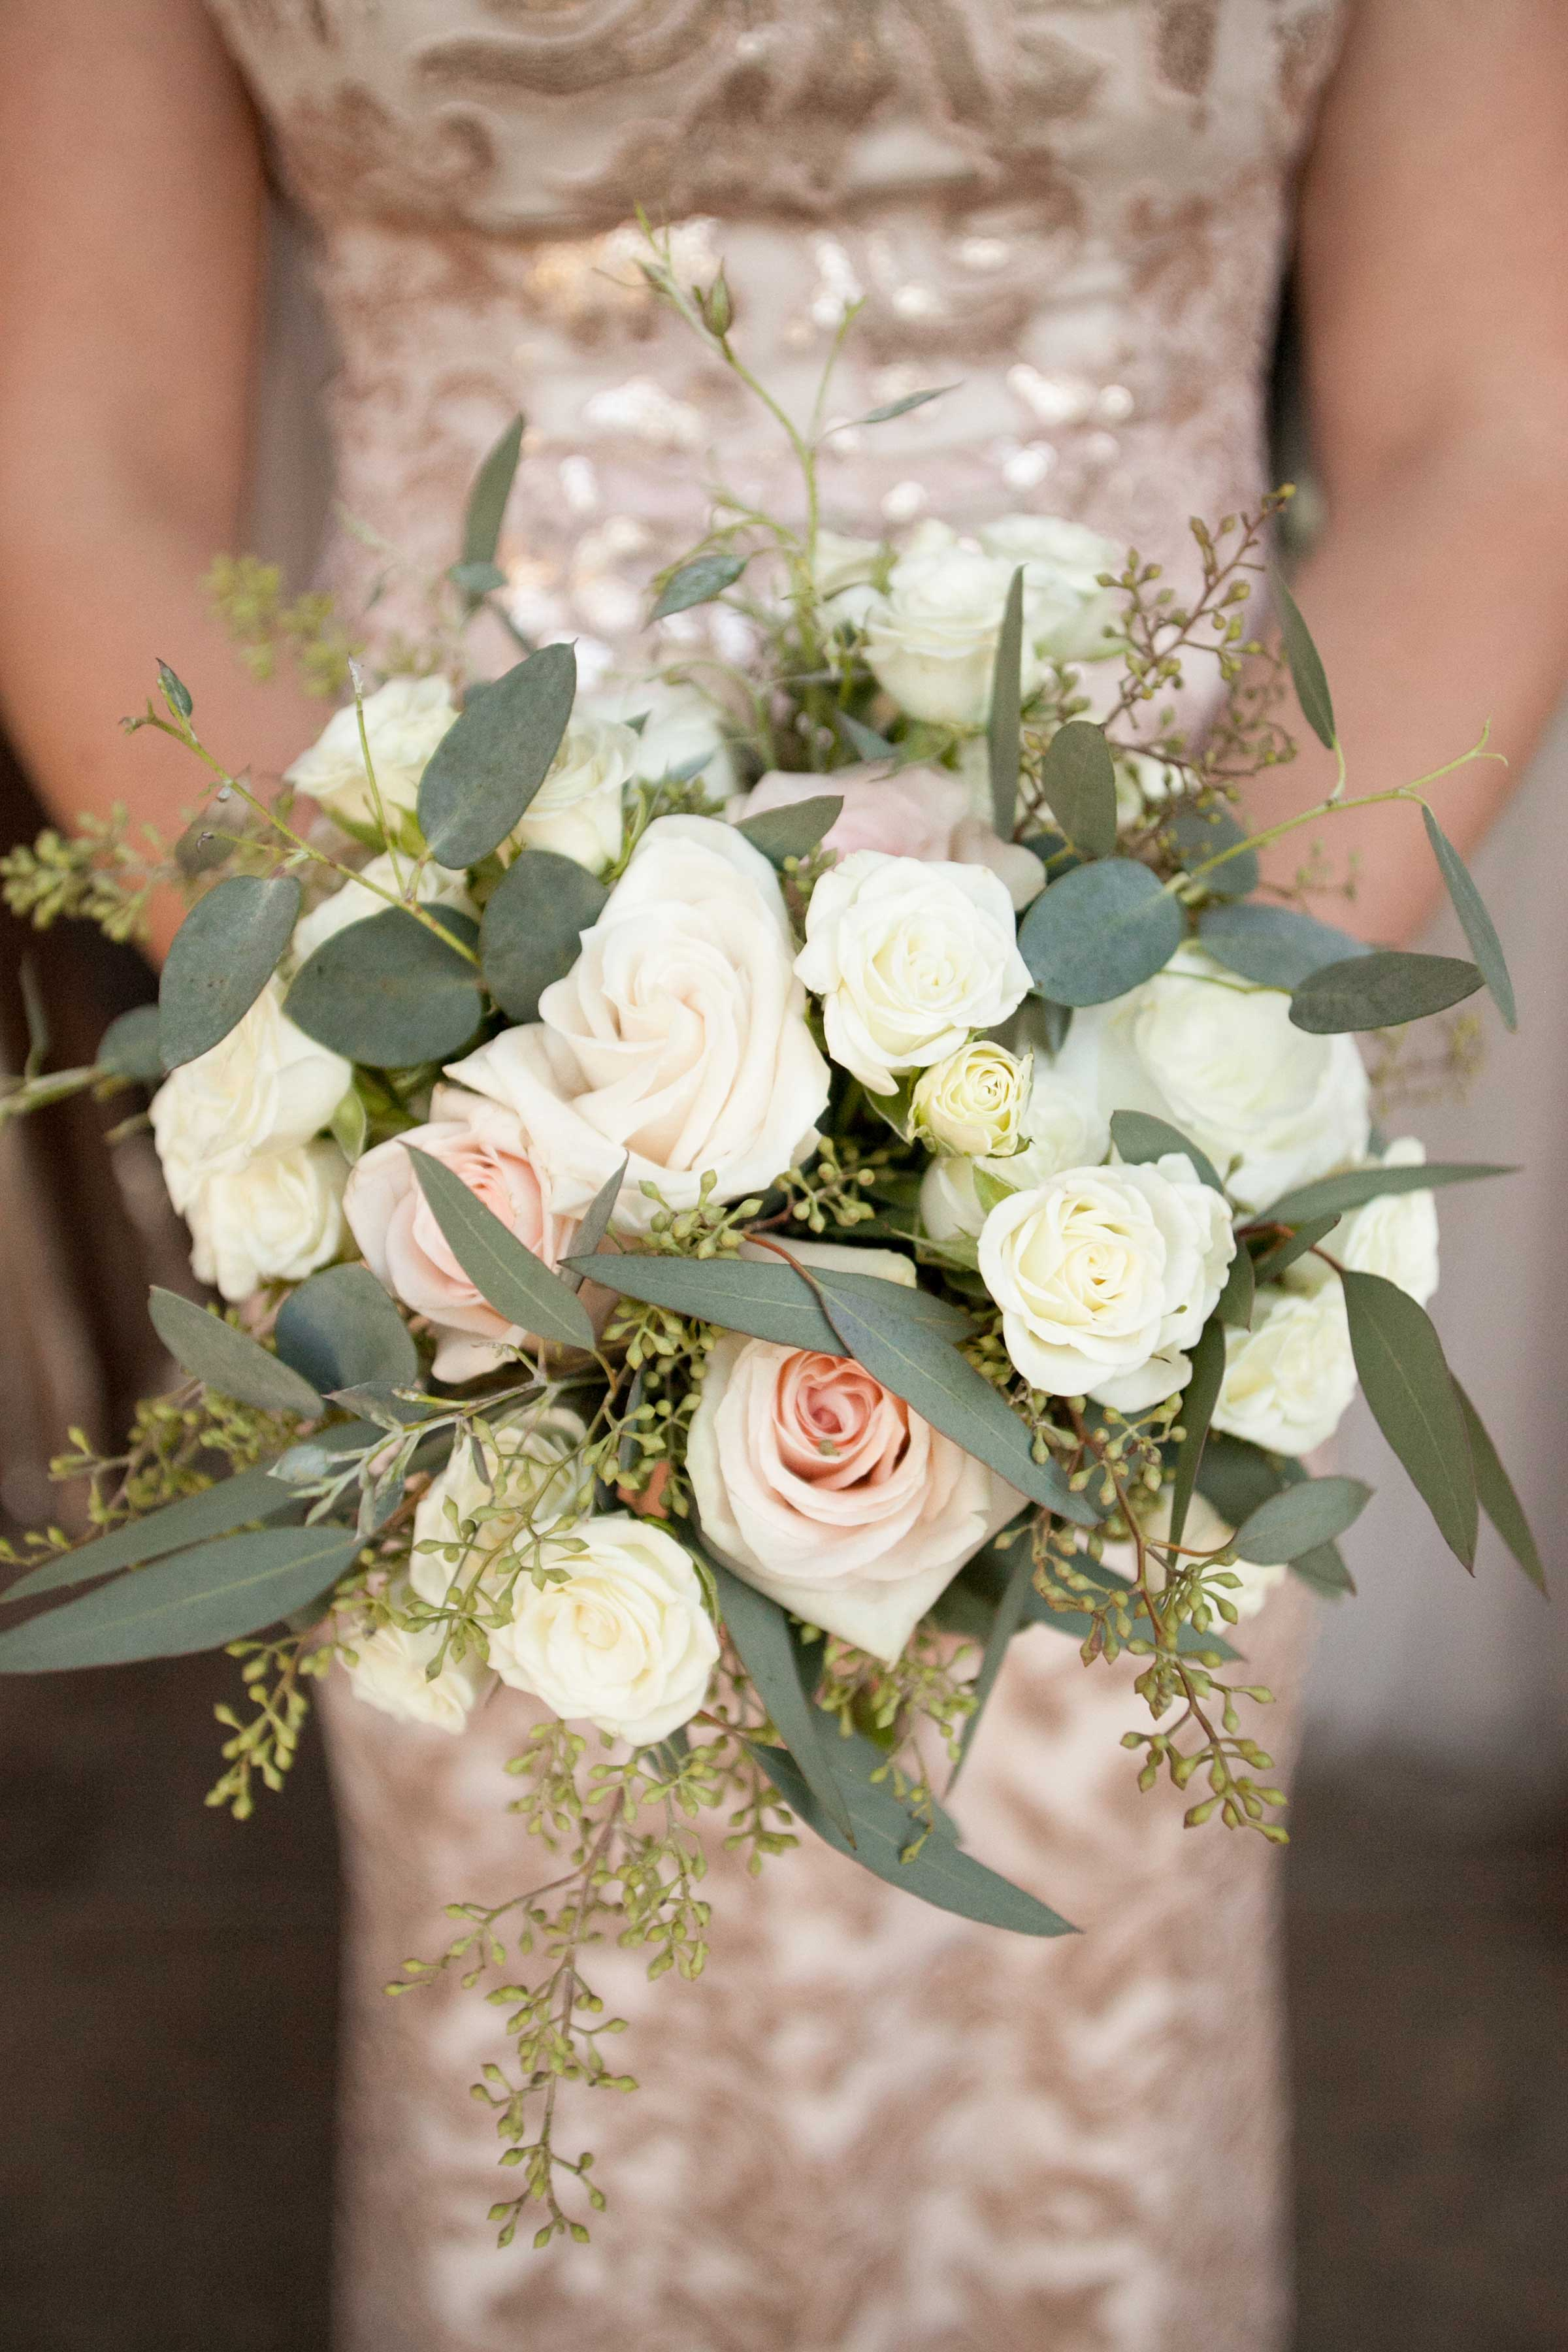 Rustic and Chic Bridal Bouquets - Inside Weddings